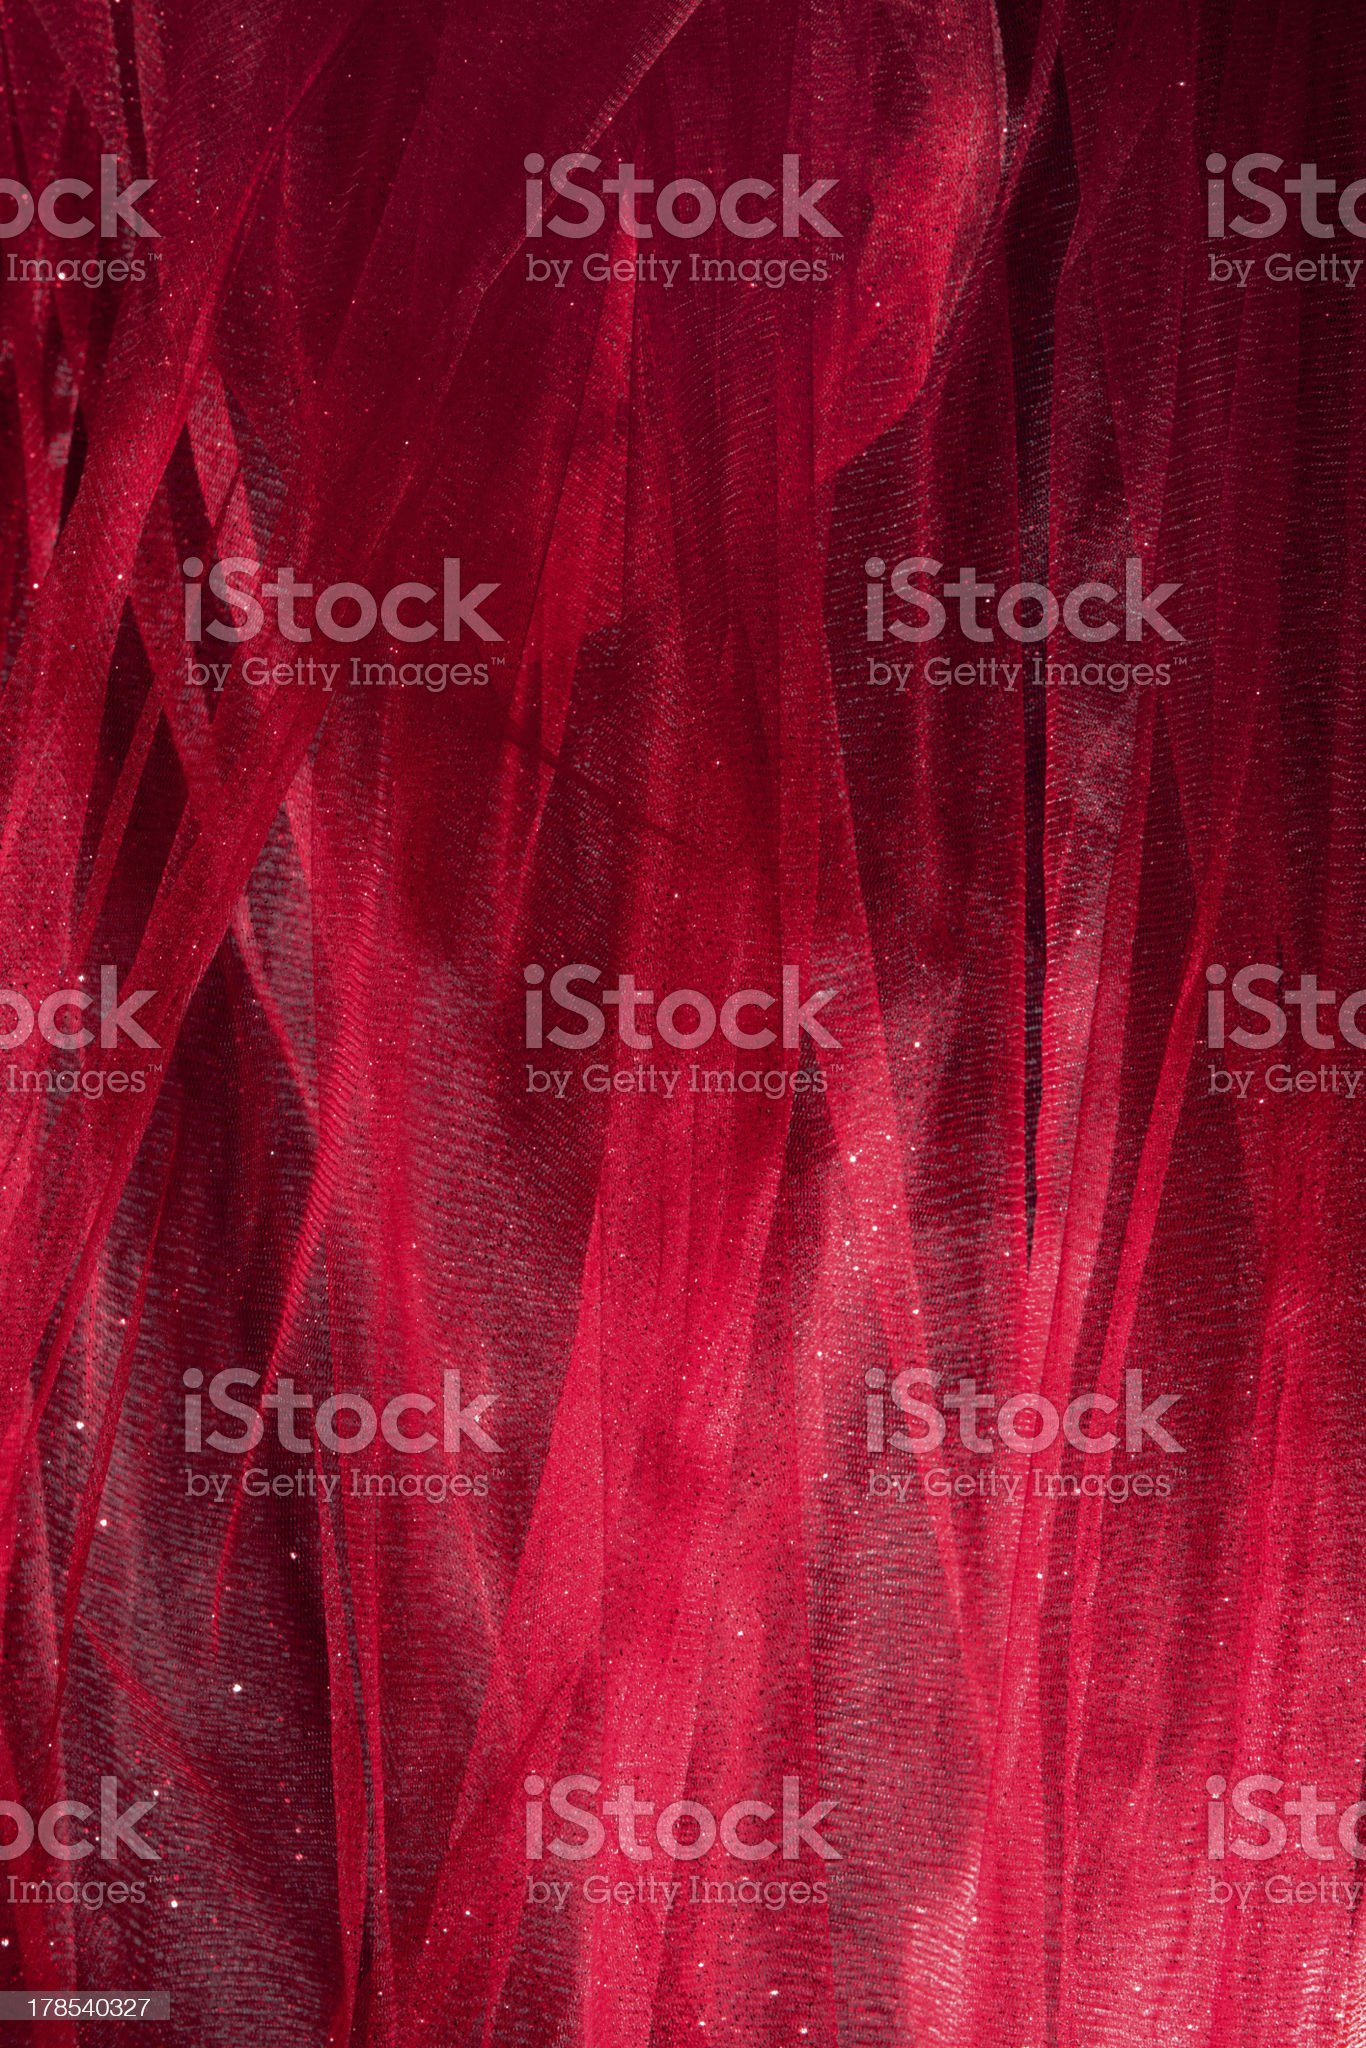 tulle background royalty-free stock photo